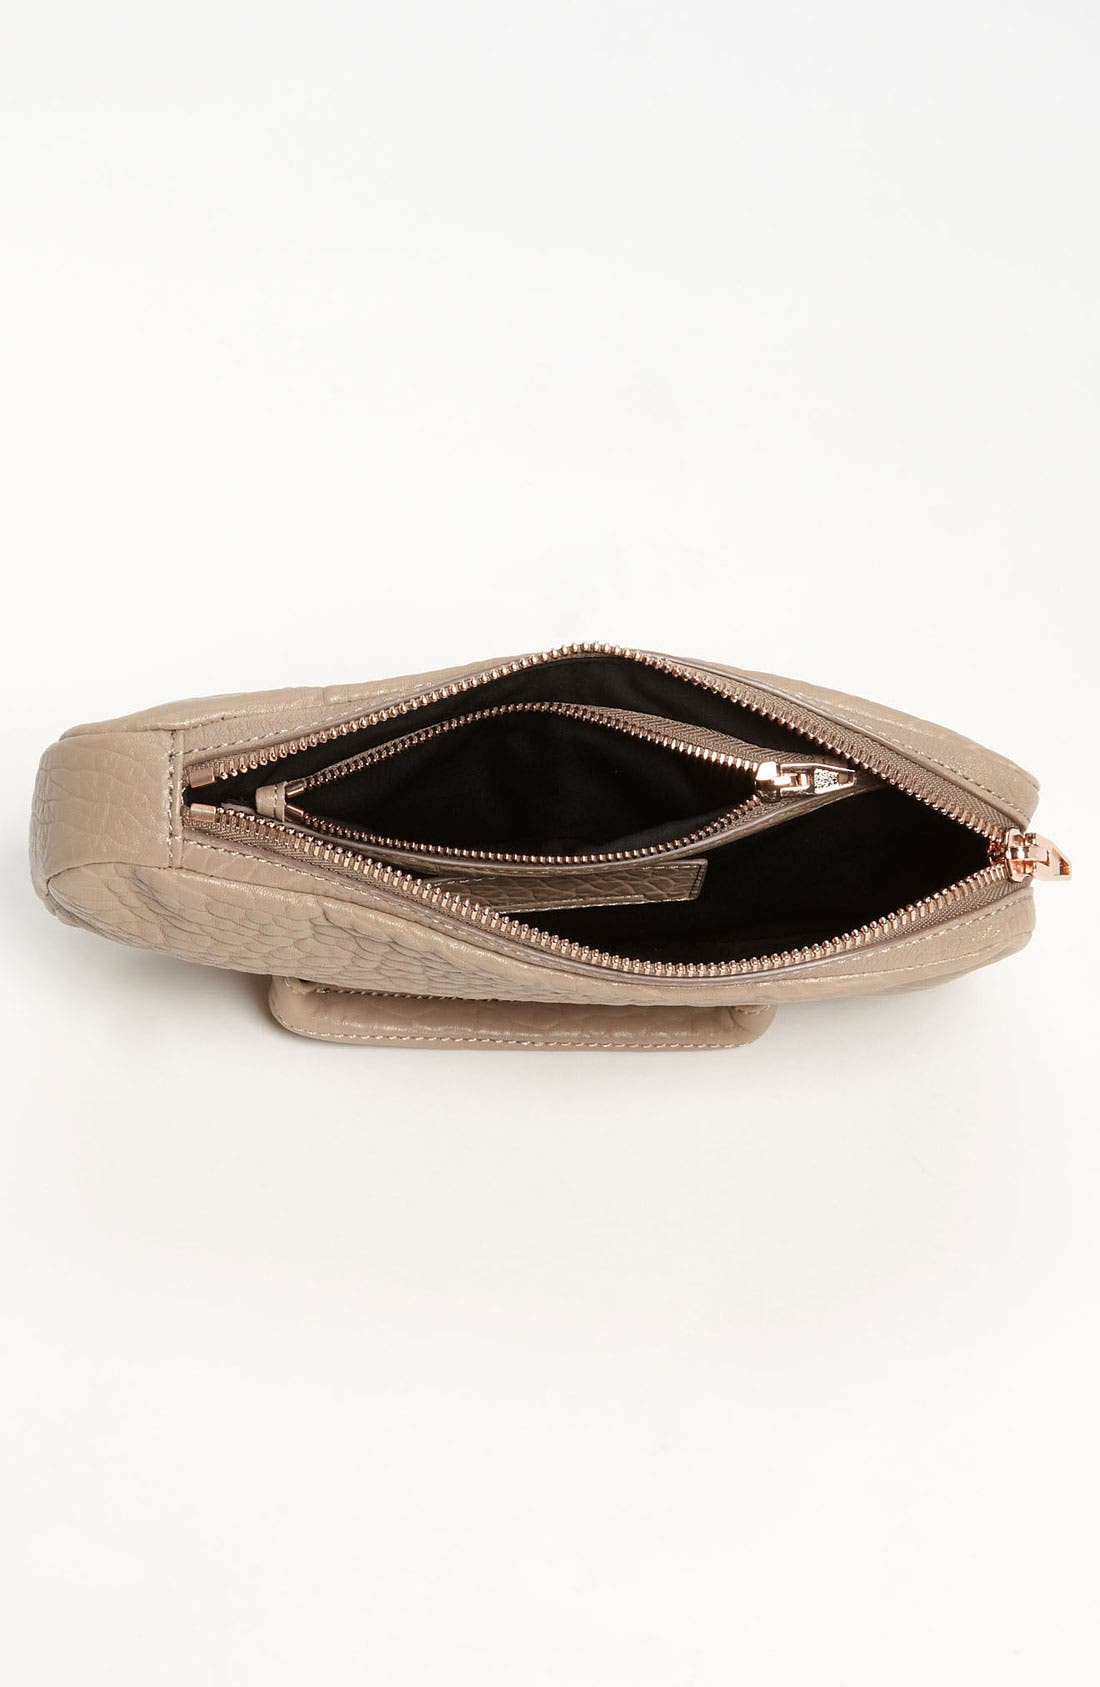 Alternate Image 3  - Alexander Wang 'Dumbo' Leather Clutch